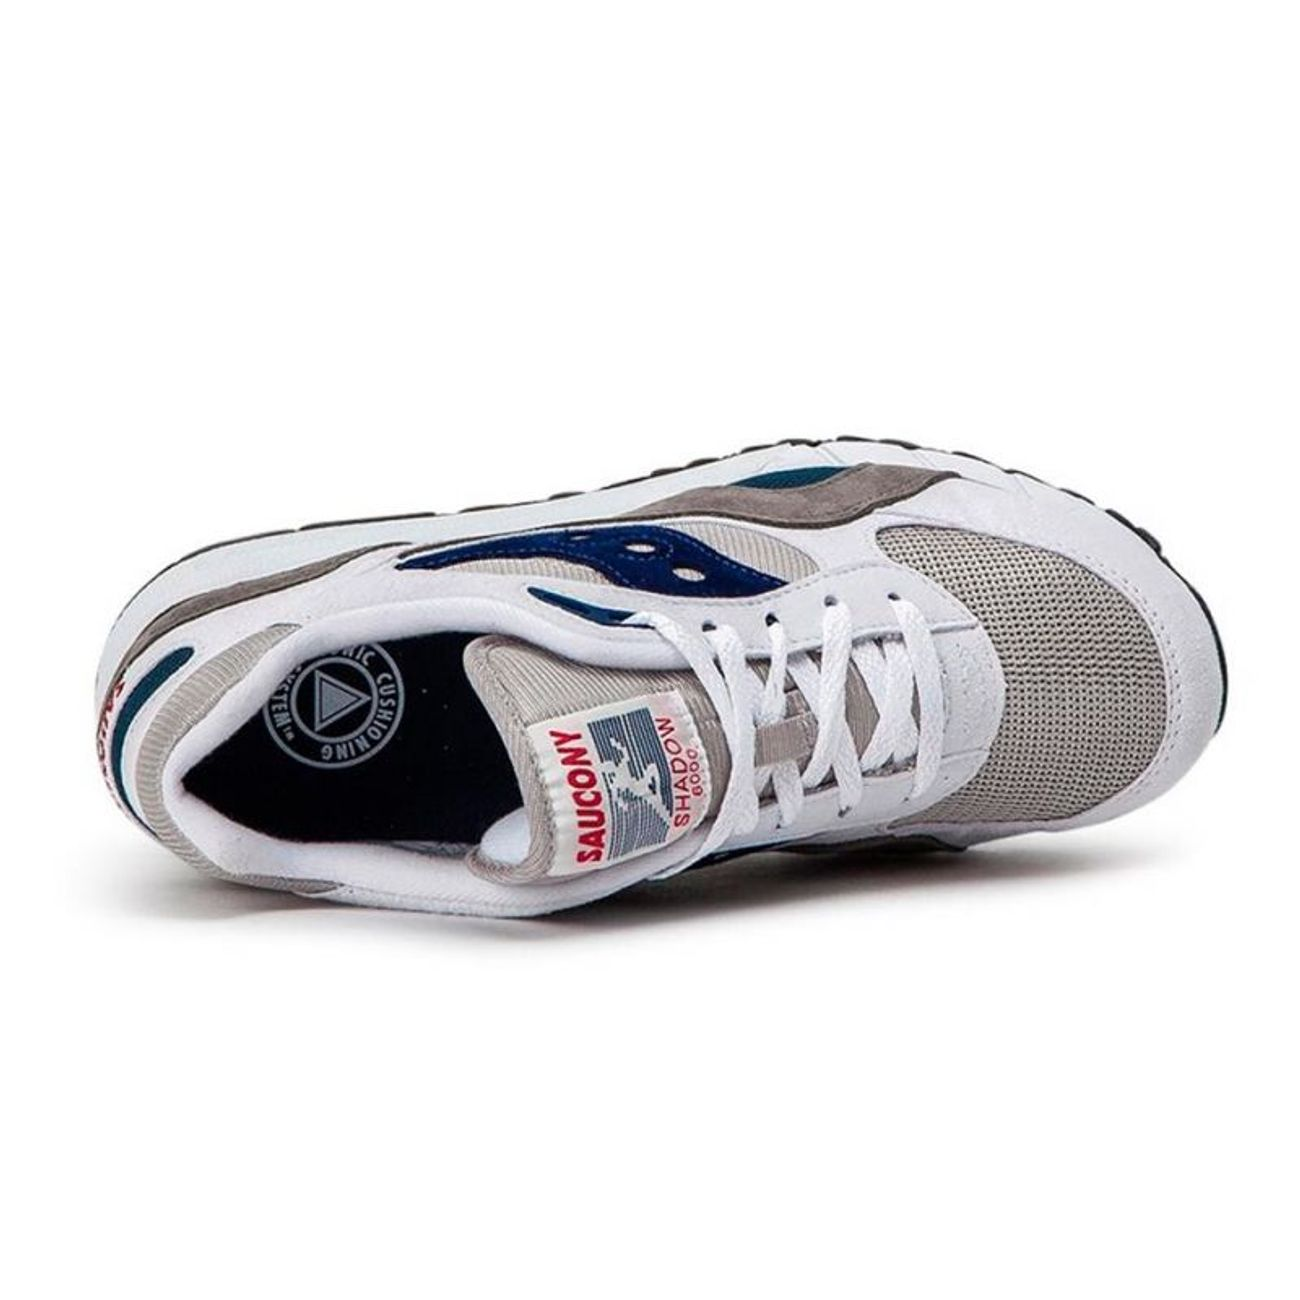 6000 S70441 Padel Shadow 1 Adulte Saucony Gris Blanc 3R4Lc5Ajq